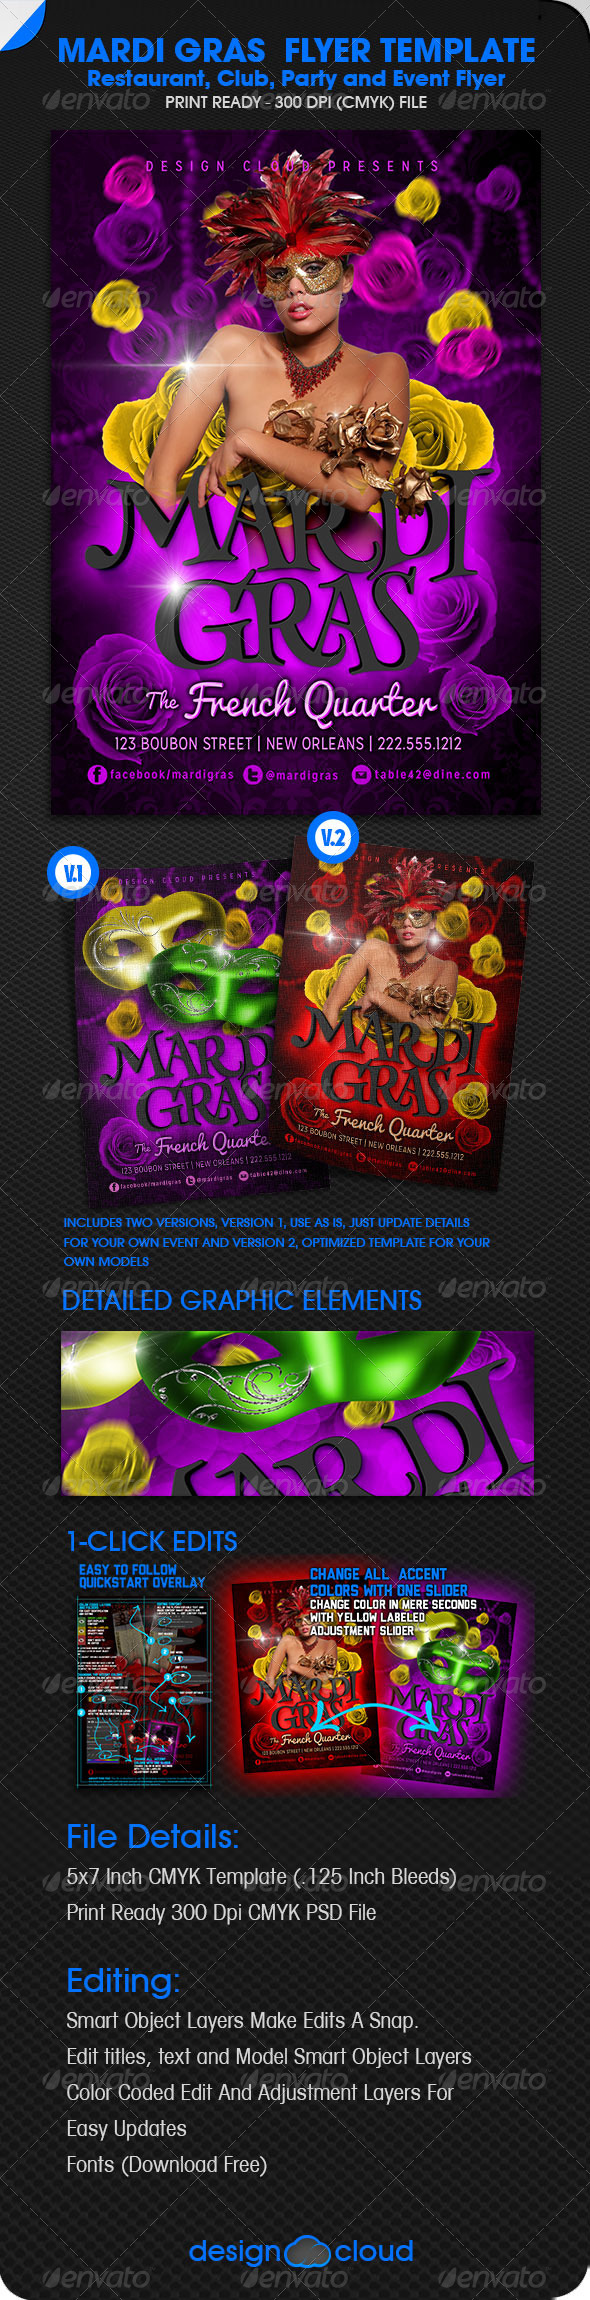 GraphicRiver Mardi Gras Event Flyer 6537228